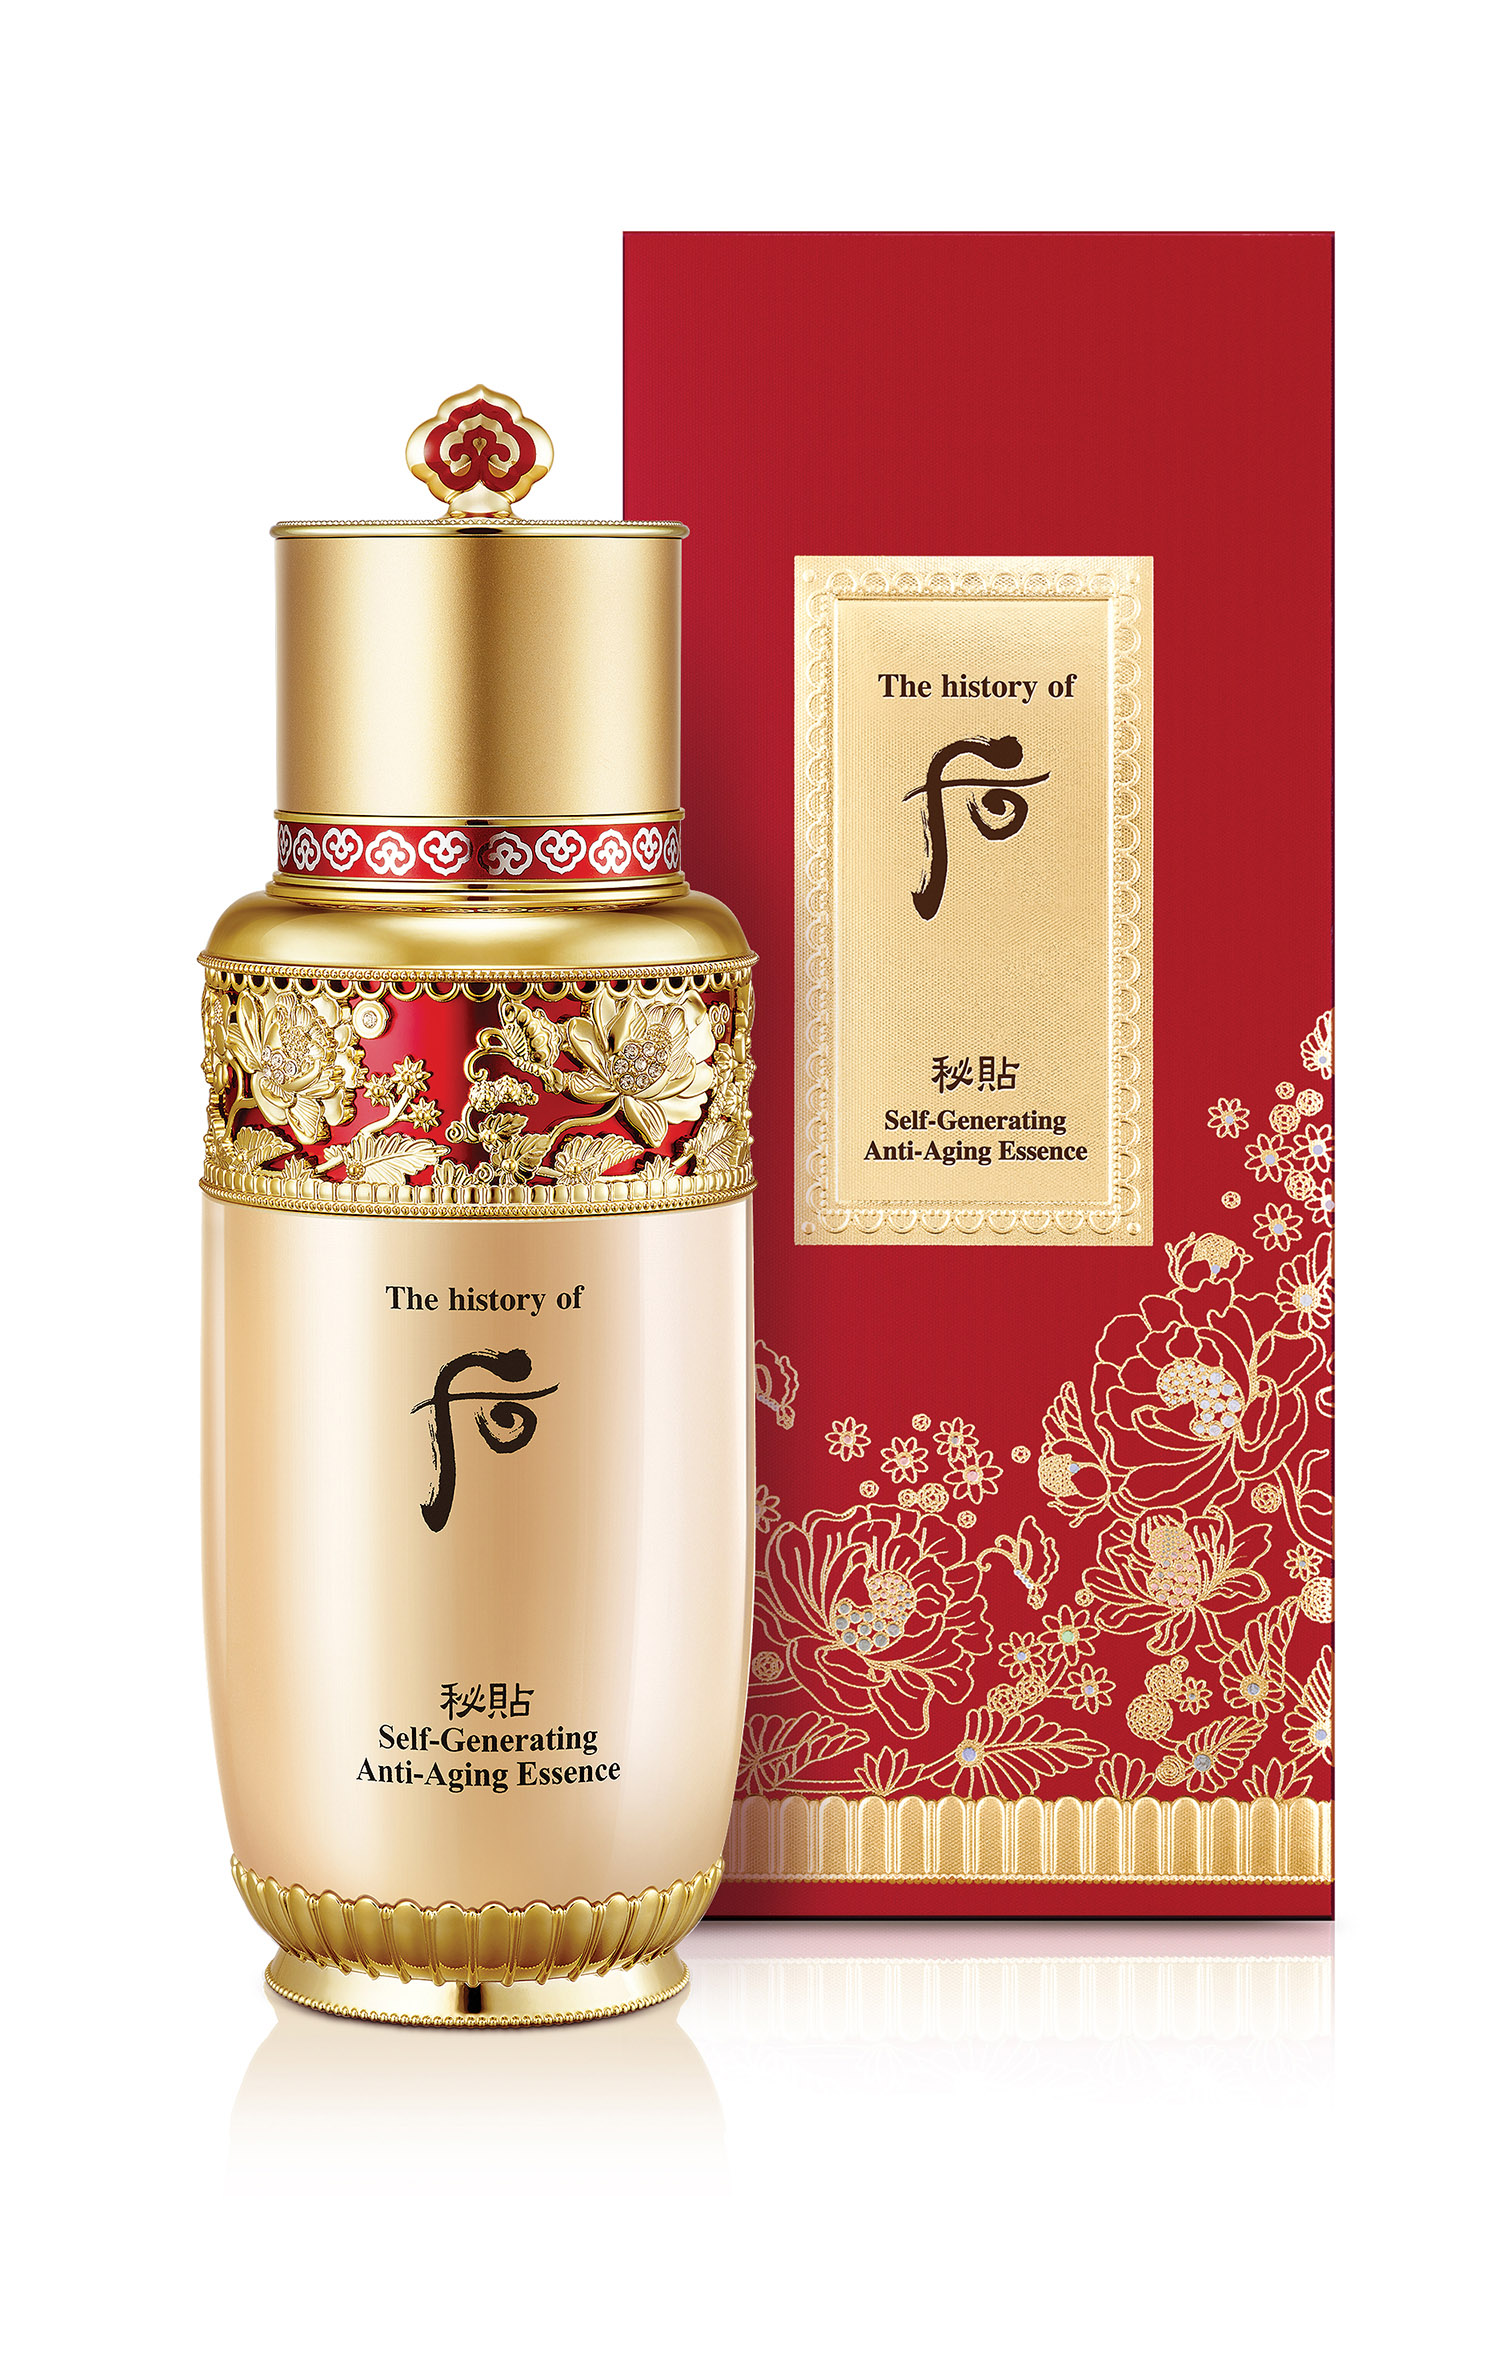 The history of Whoo 秘貼